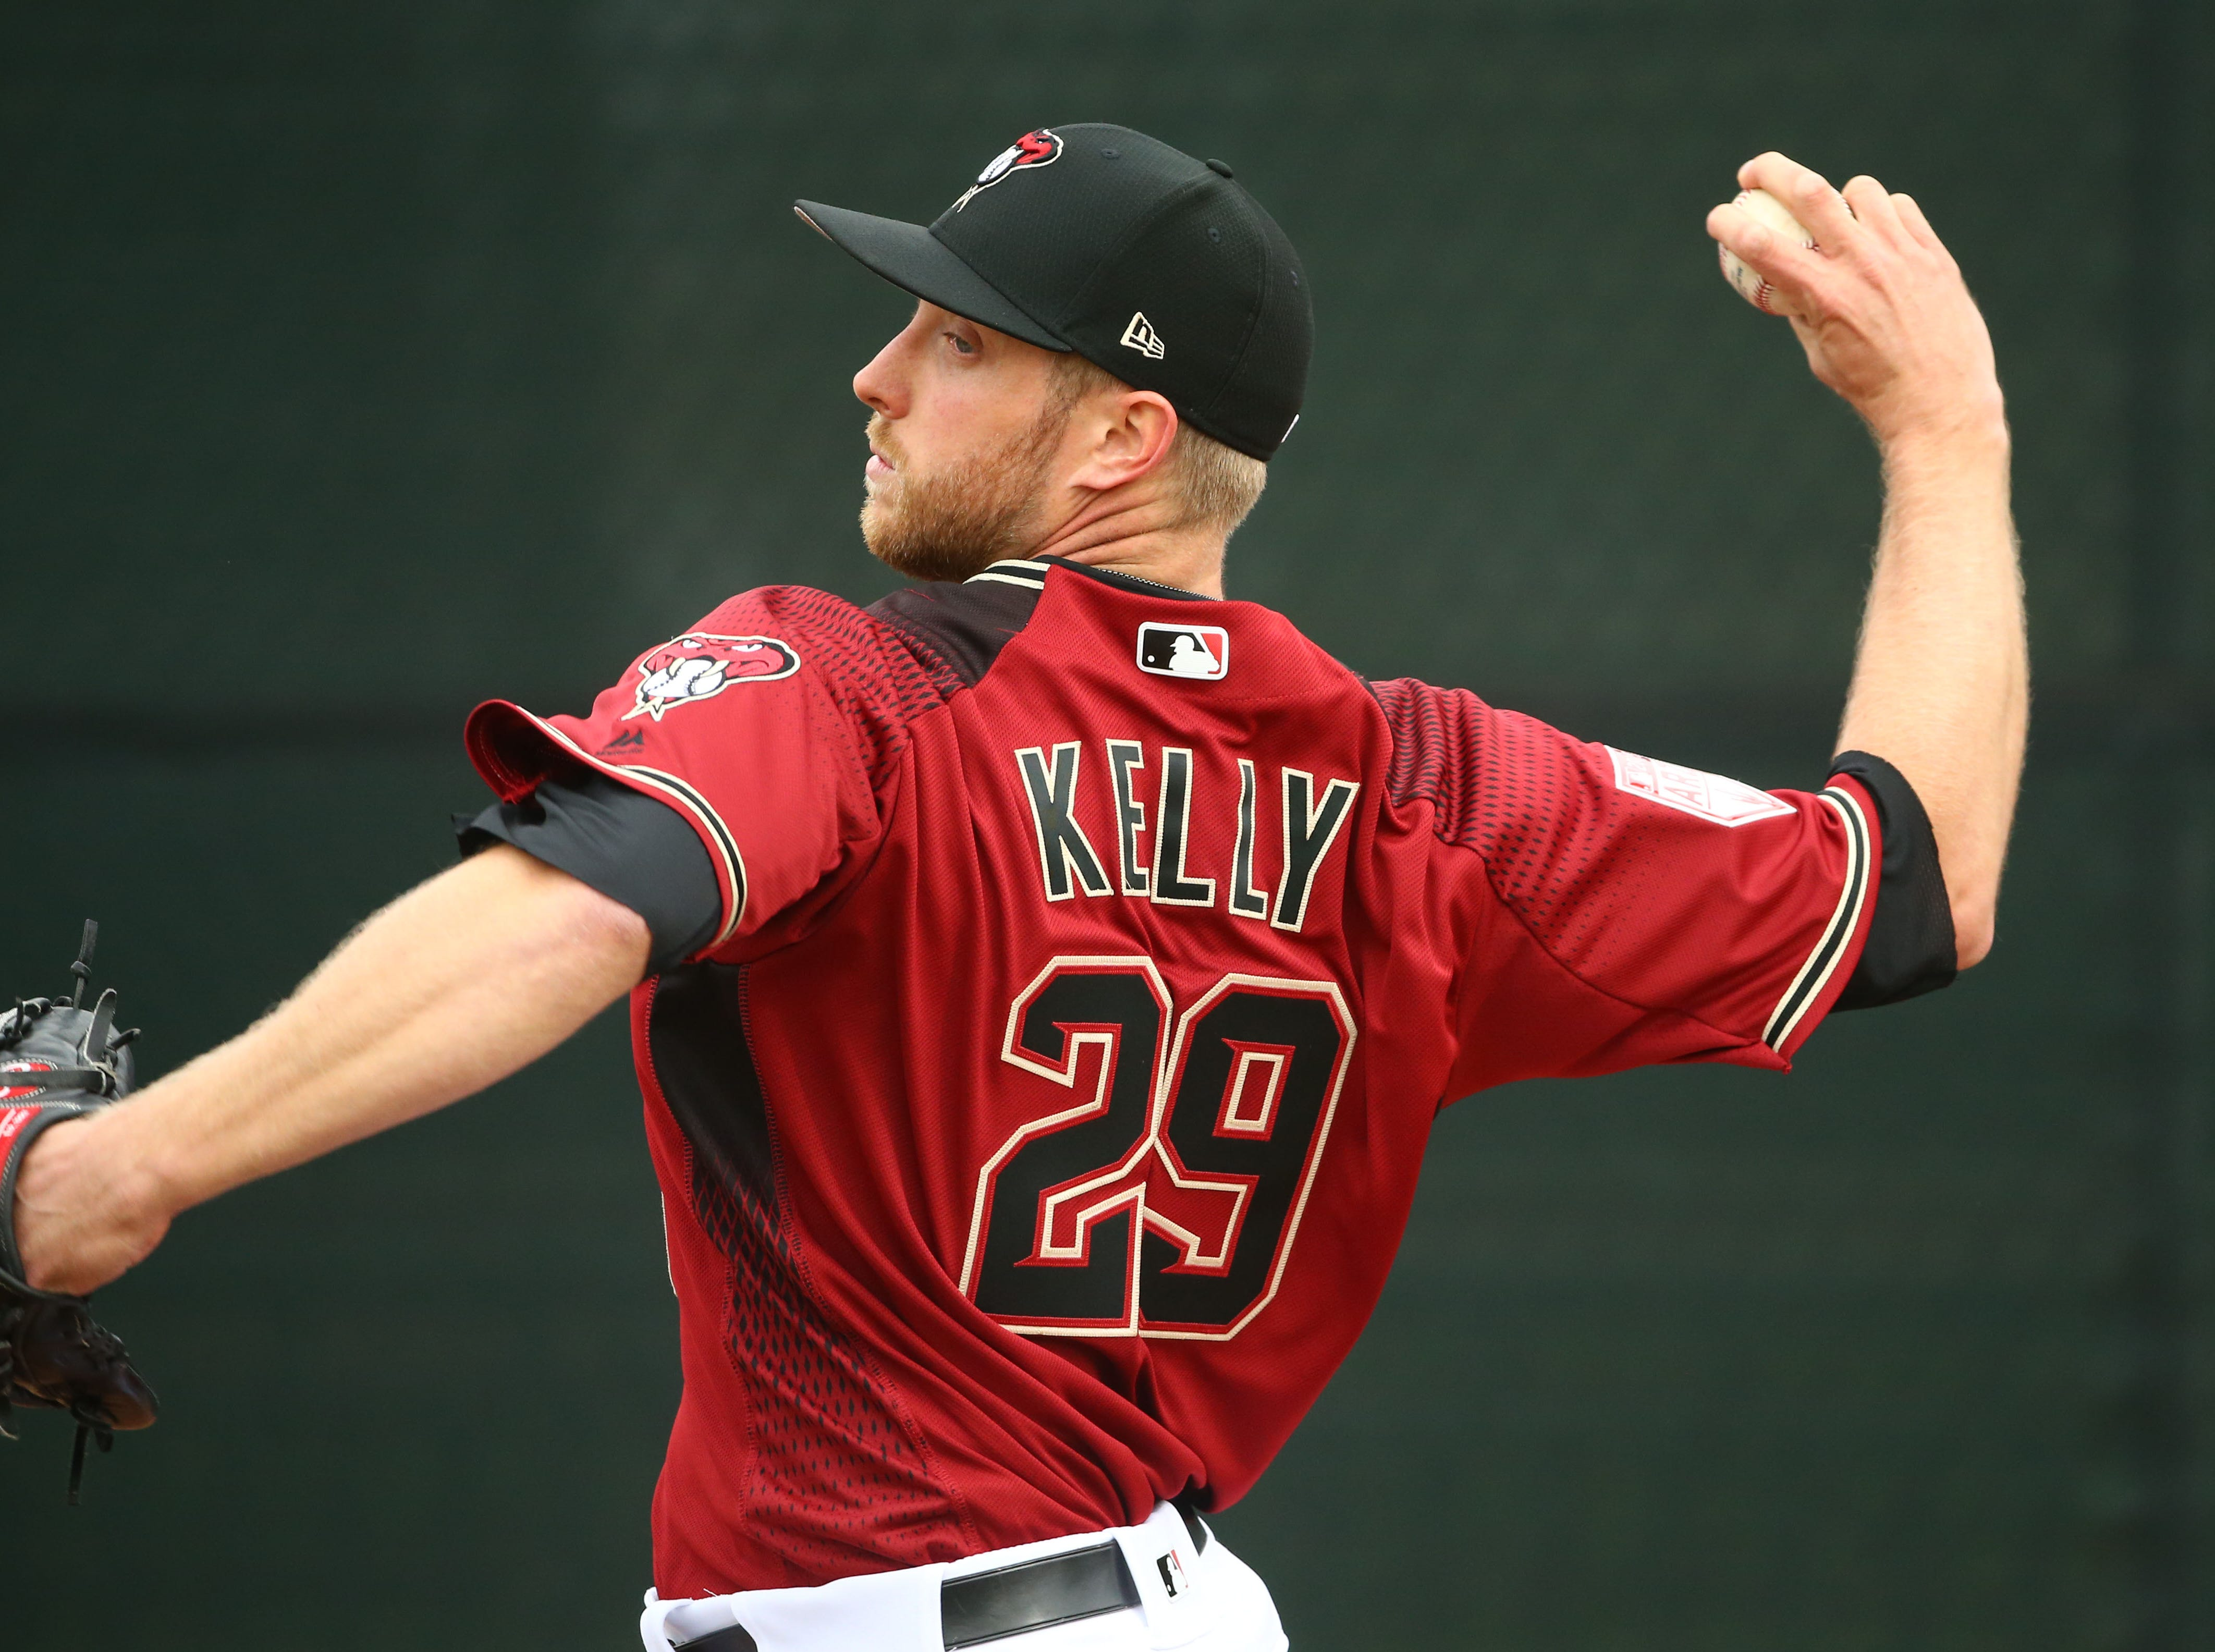 Arizona Diamondbacks Merrill Kelly (29) in the bullpen during the first day of spring training workouts on Feb. 13 at Salt River Fields in Scottsdale.